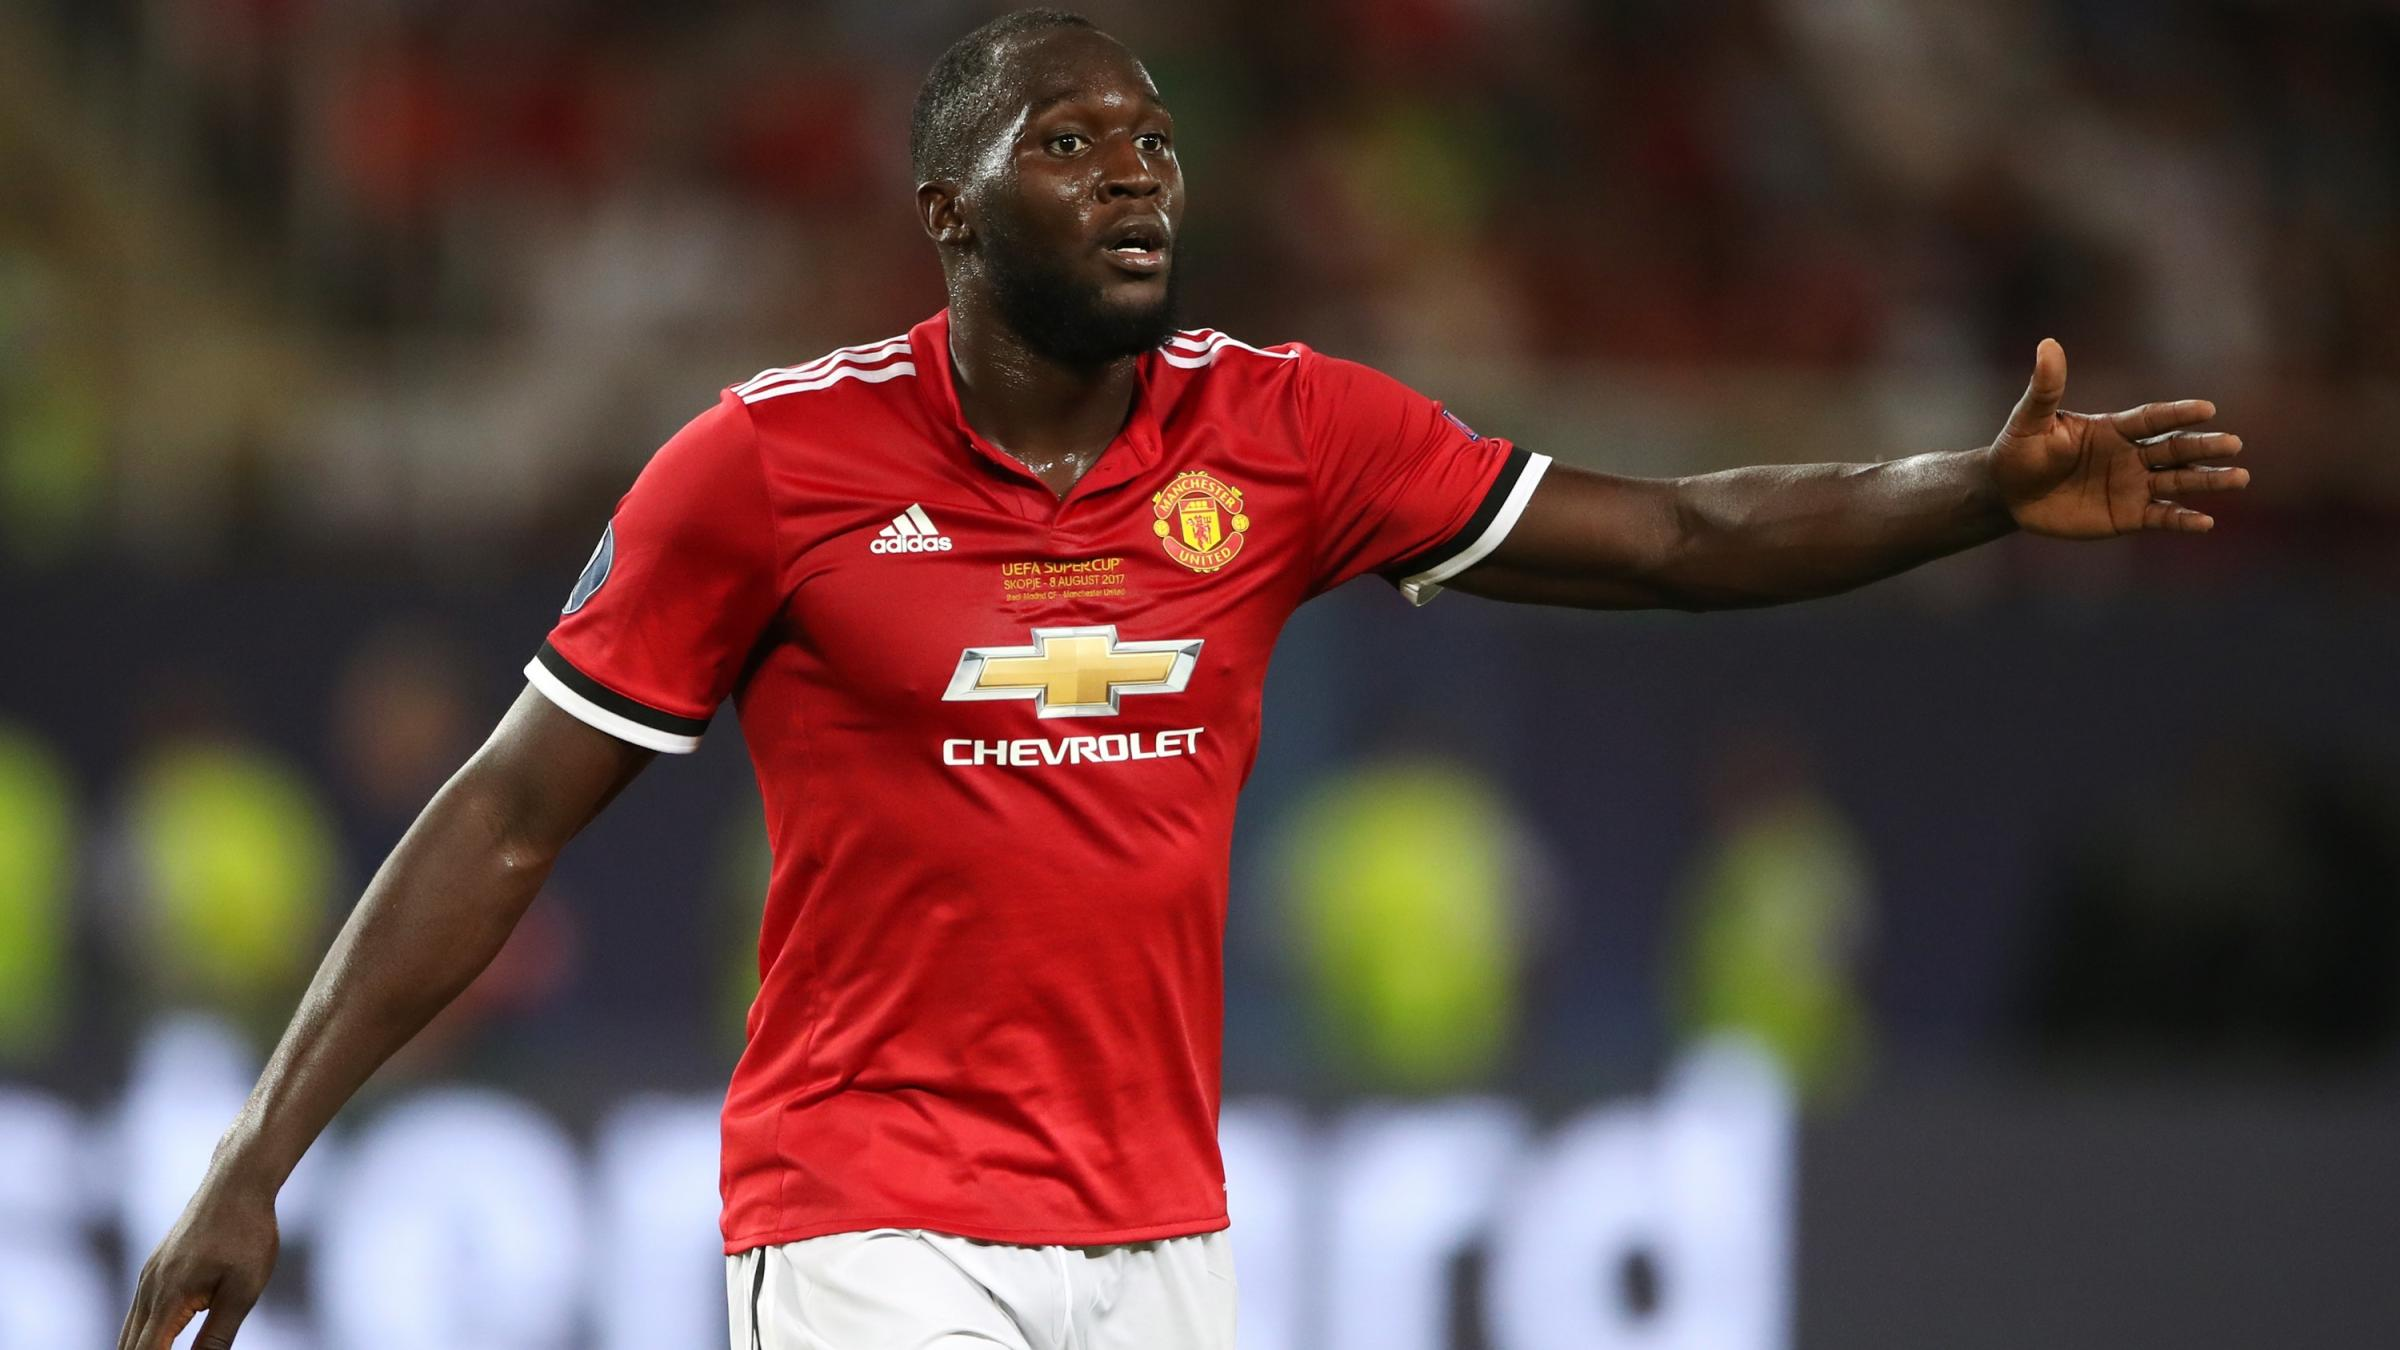 The Premier League's leading scorer injured his ankle in Manchester United's 4-0 win over Crystal Palace.